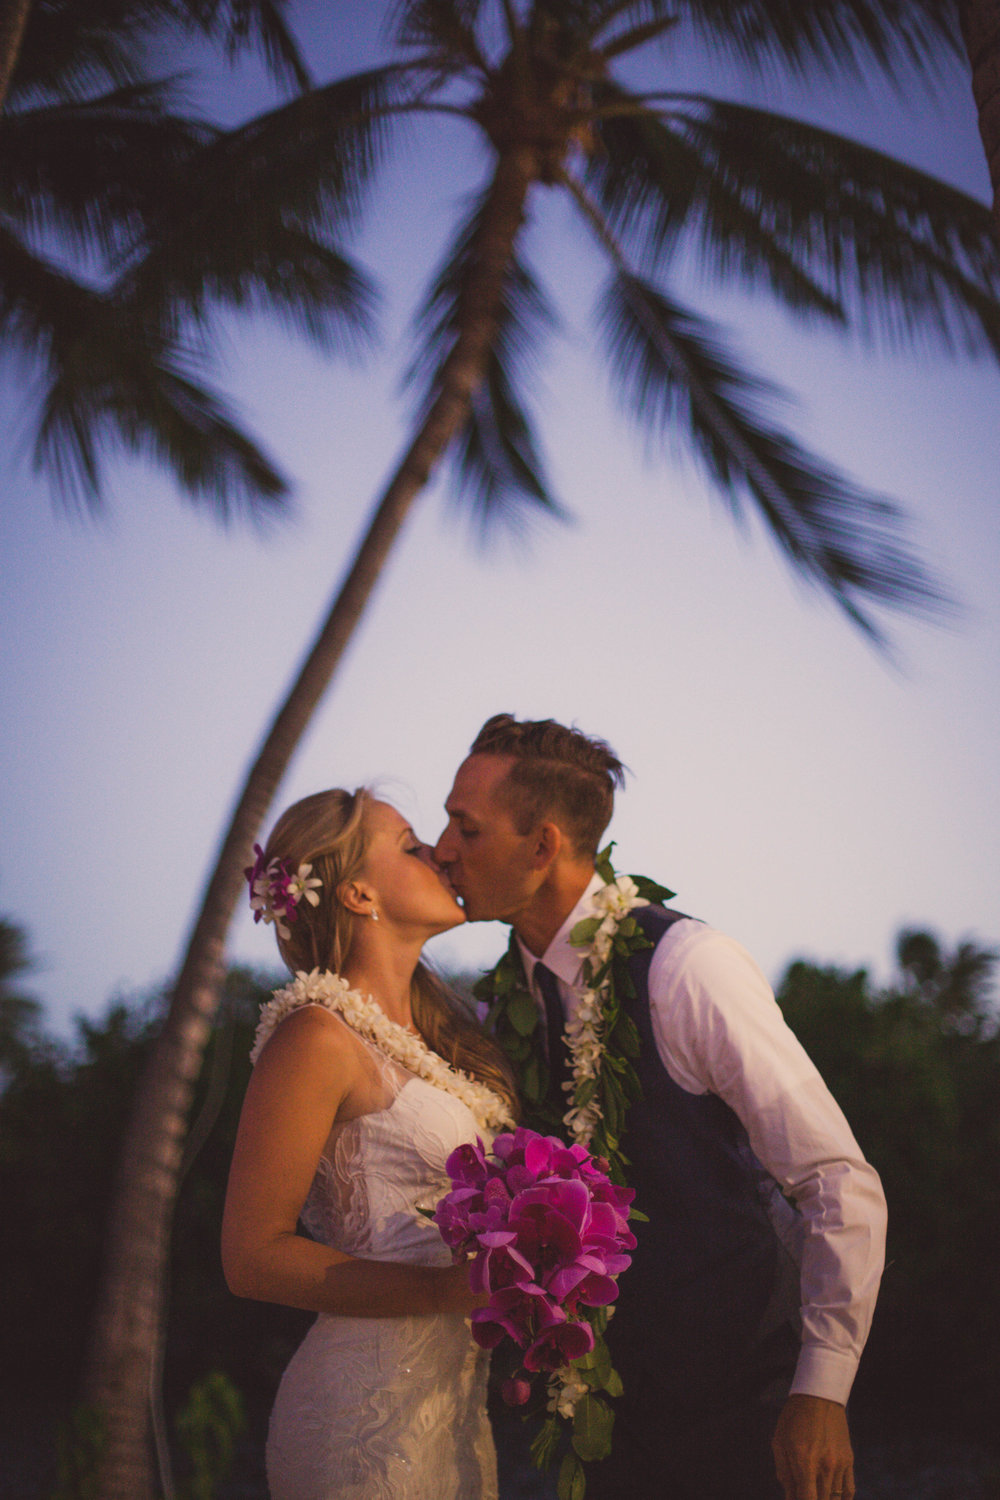 big island hawaii fairmont orchid beach wedding © kelilina photography 20170812191339-1.jpg